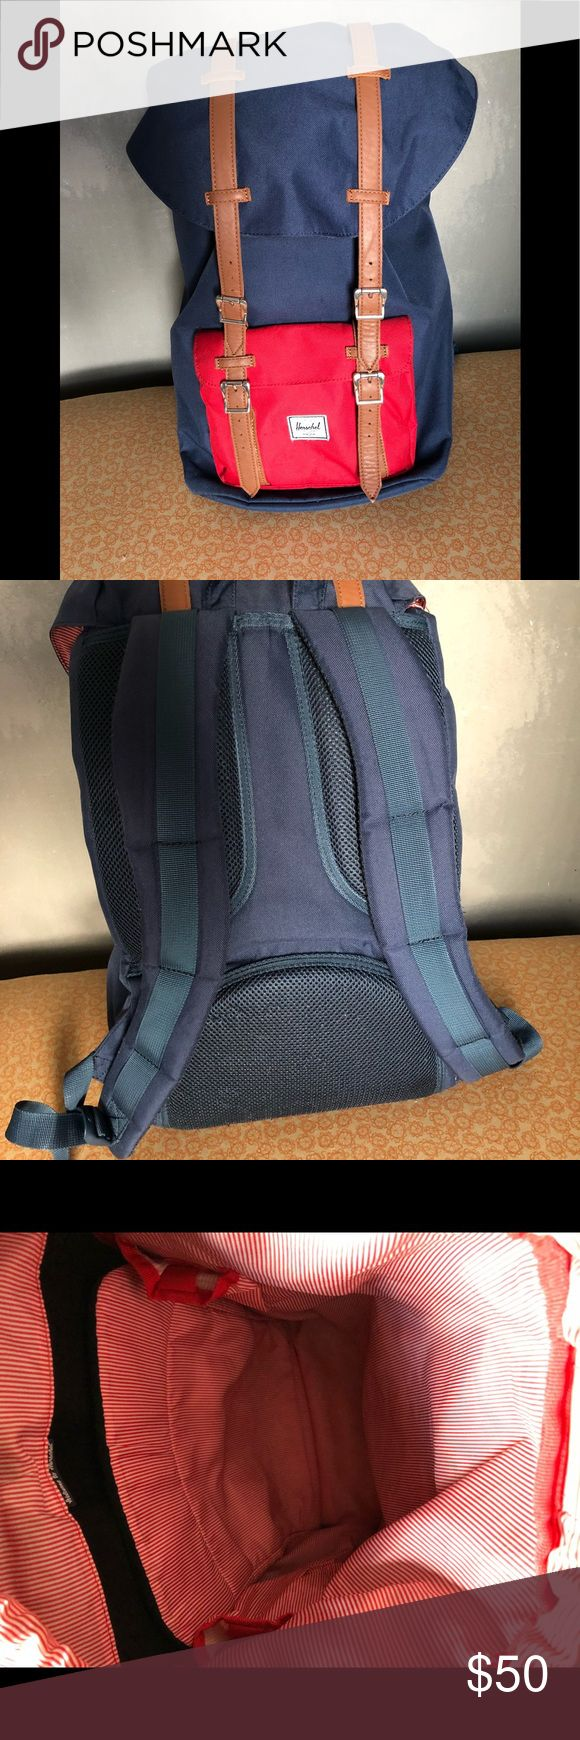 Little America navy Herschel backpack Used but in good condition. Just washed!  There is some wear on the cinch closure as shown in the last image. Herschel Supply Company Bags Backpacks